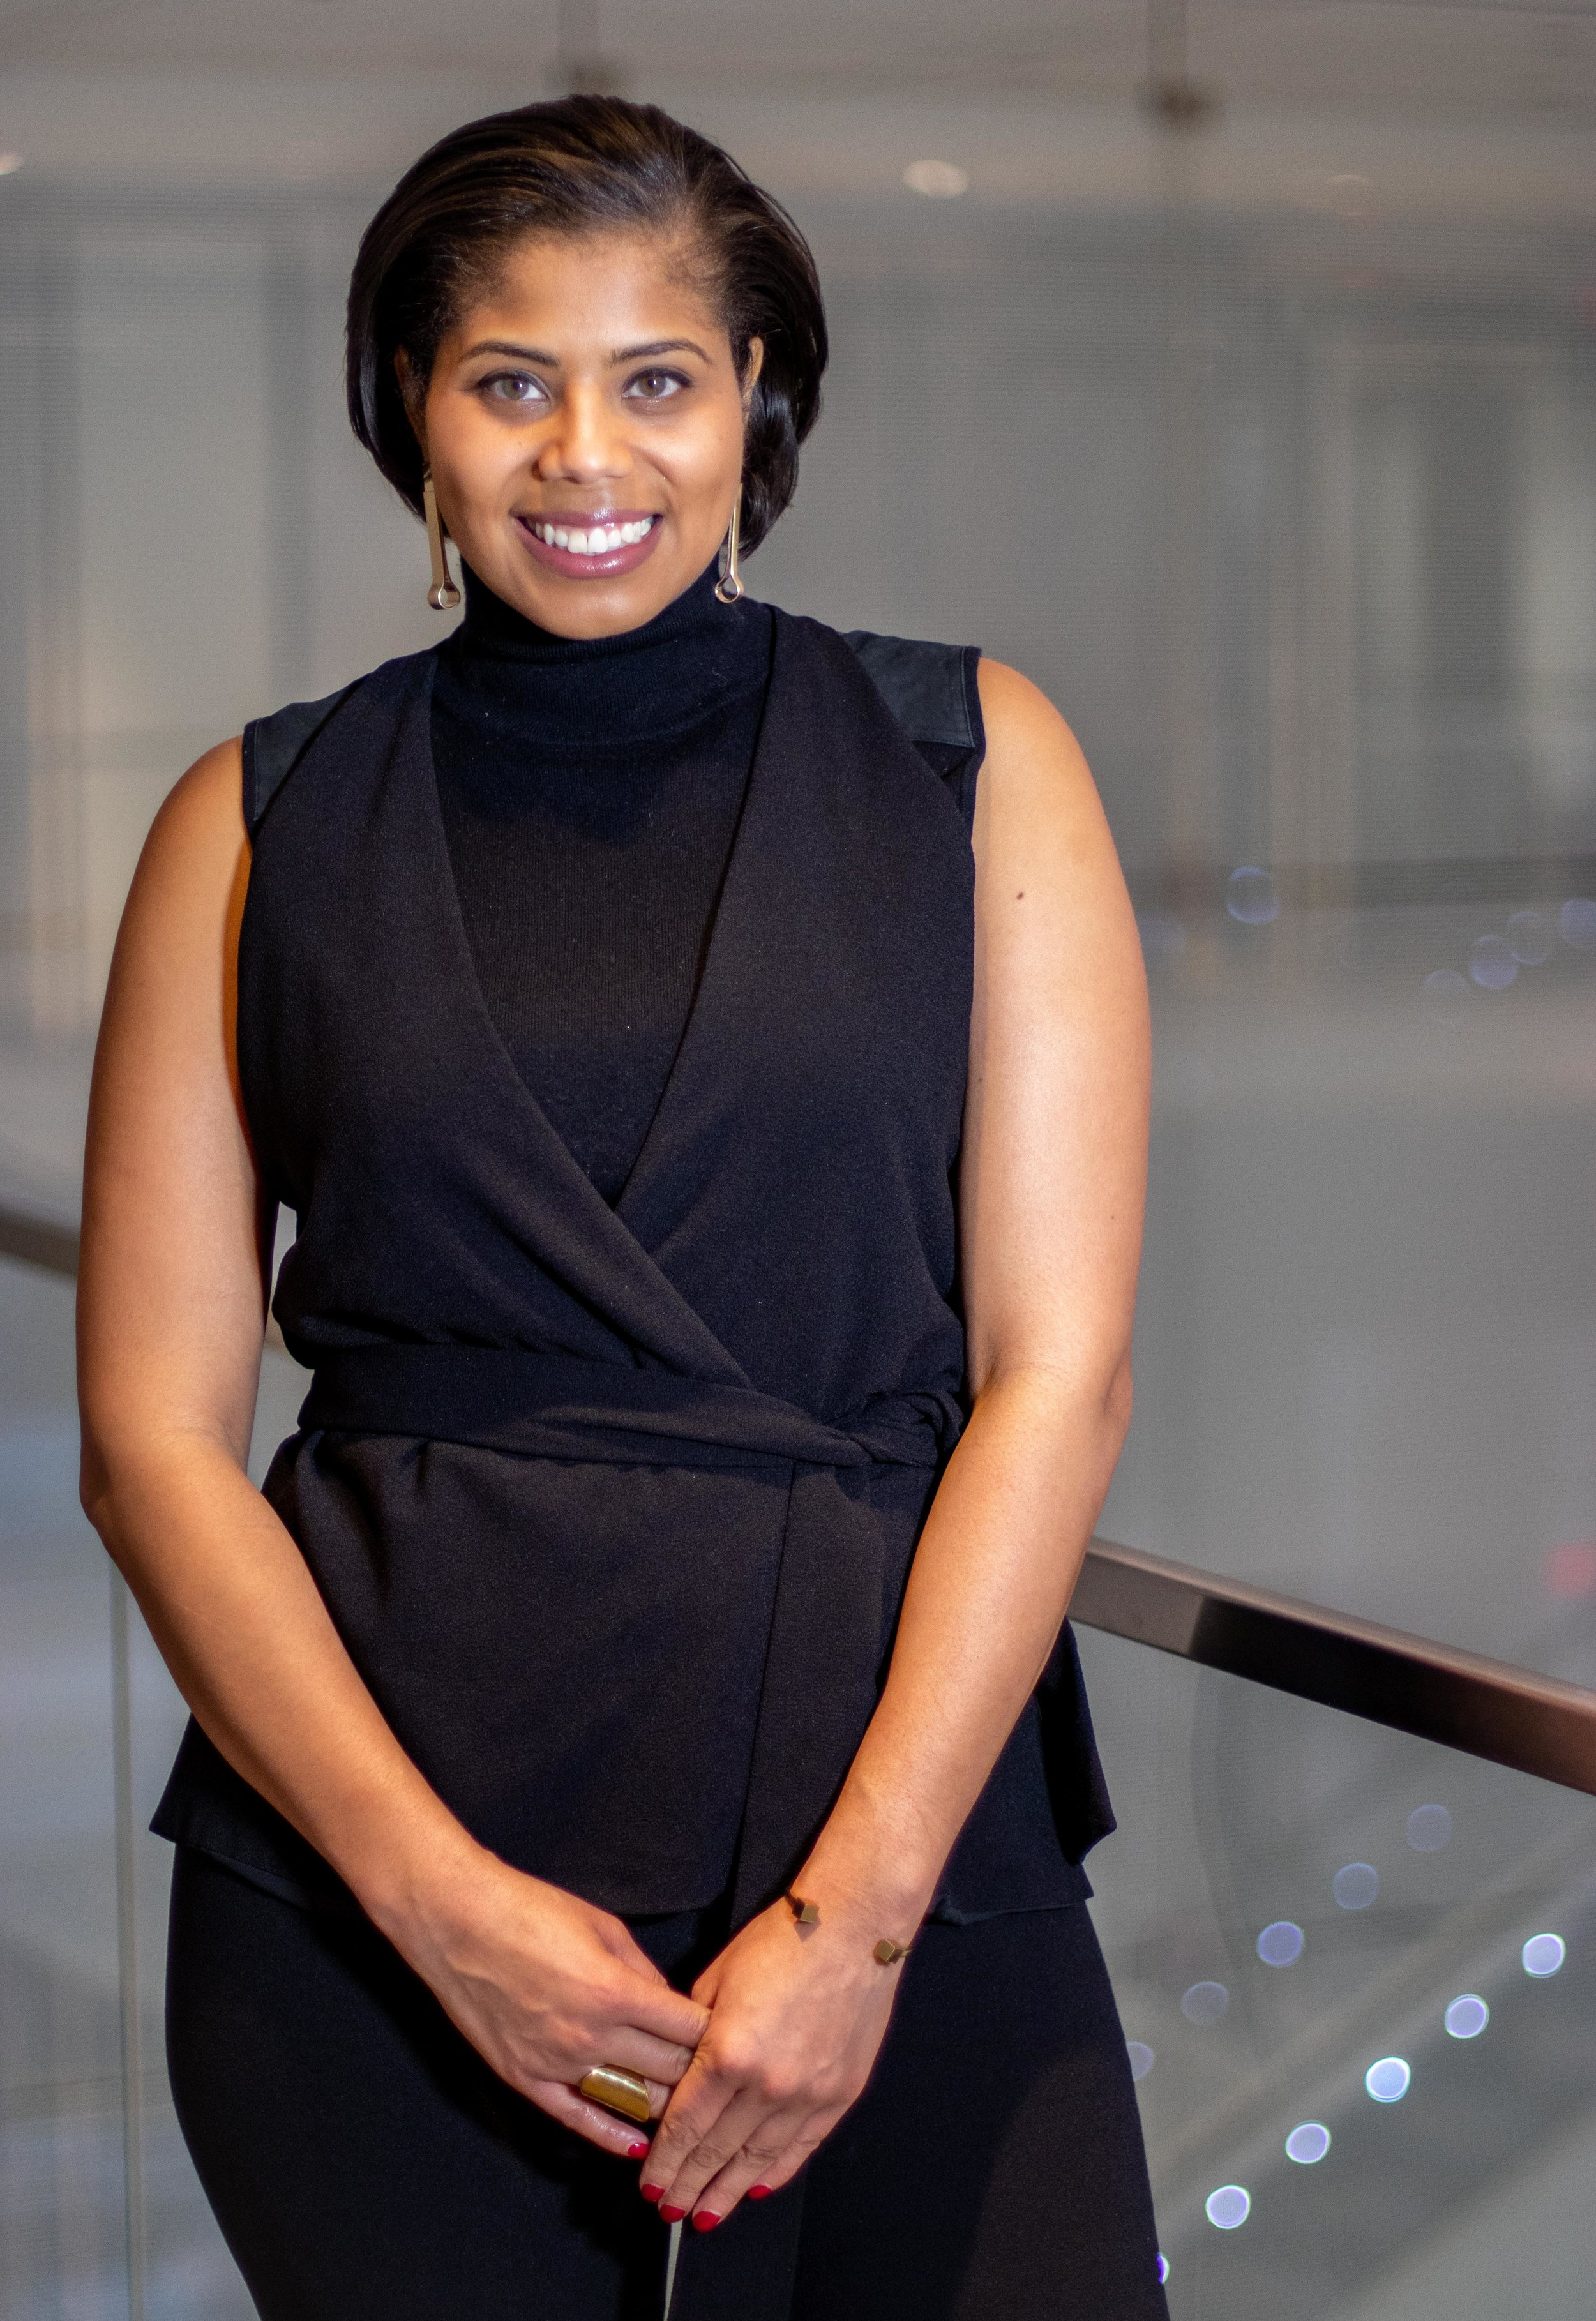 Chanel Cathey | Founder and CEO, CJC Insights, LLC